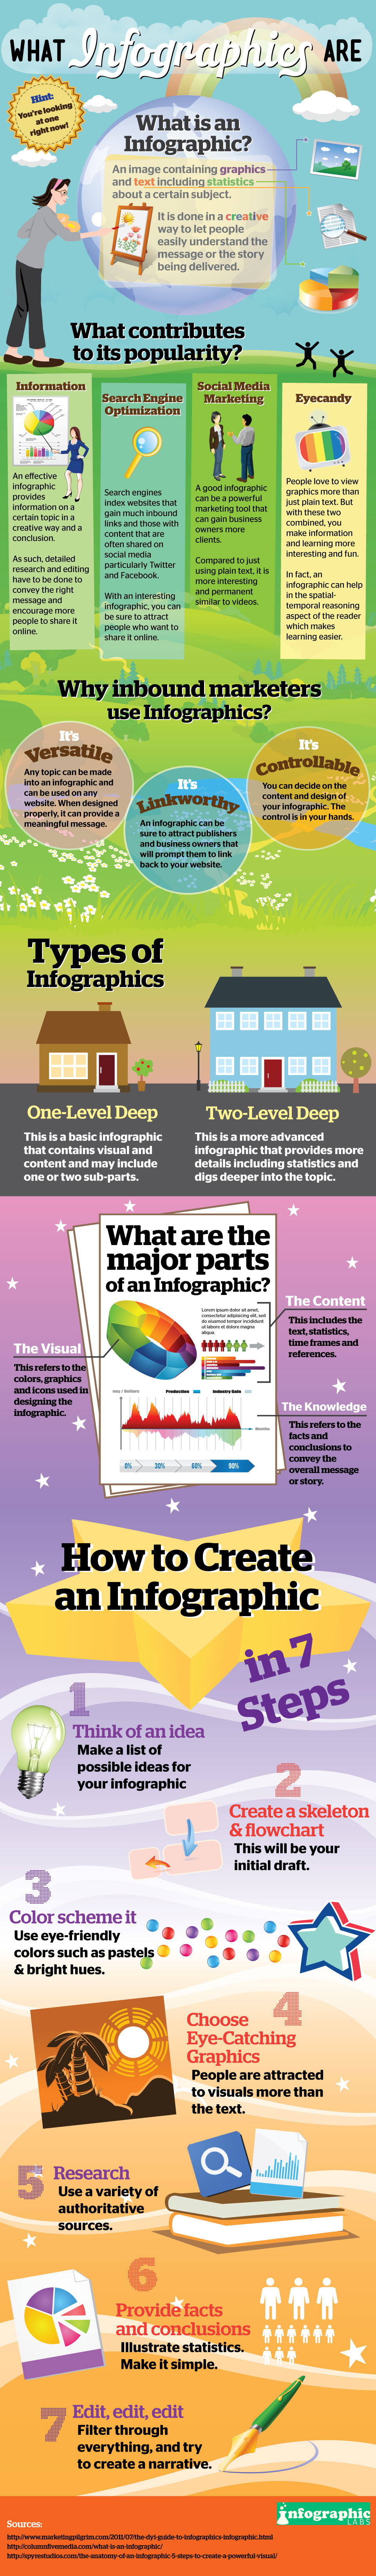 How do You Design Good Infographics?